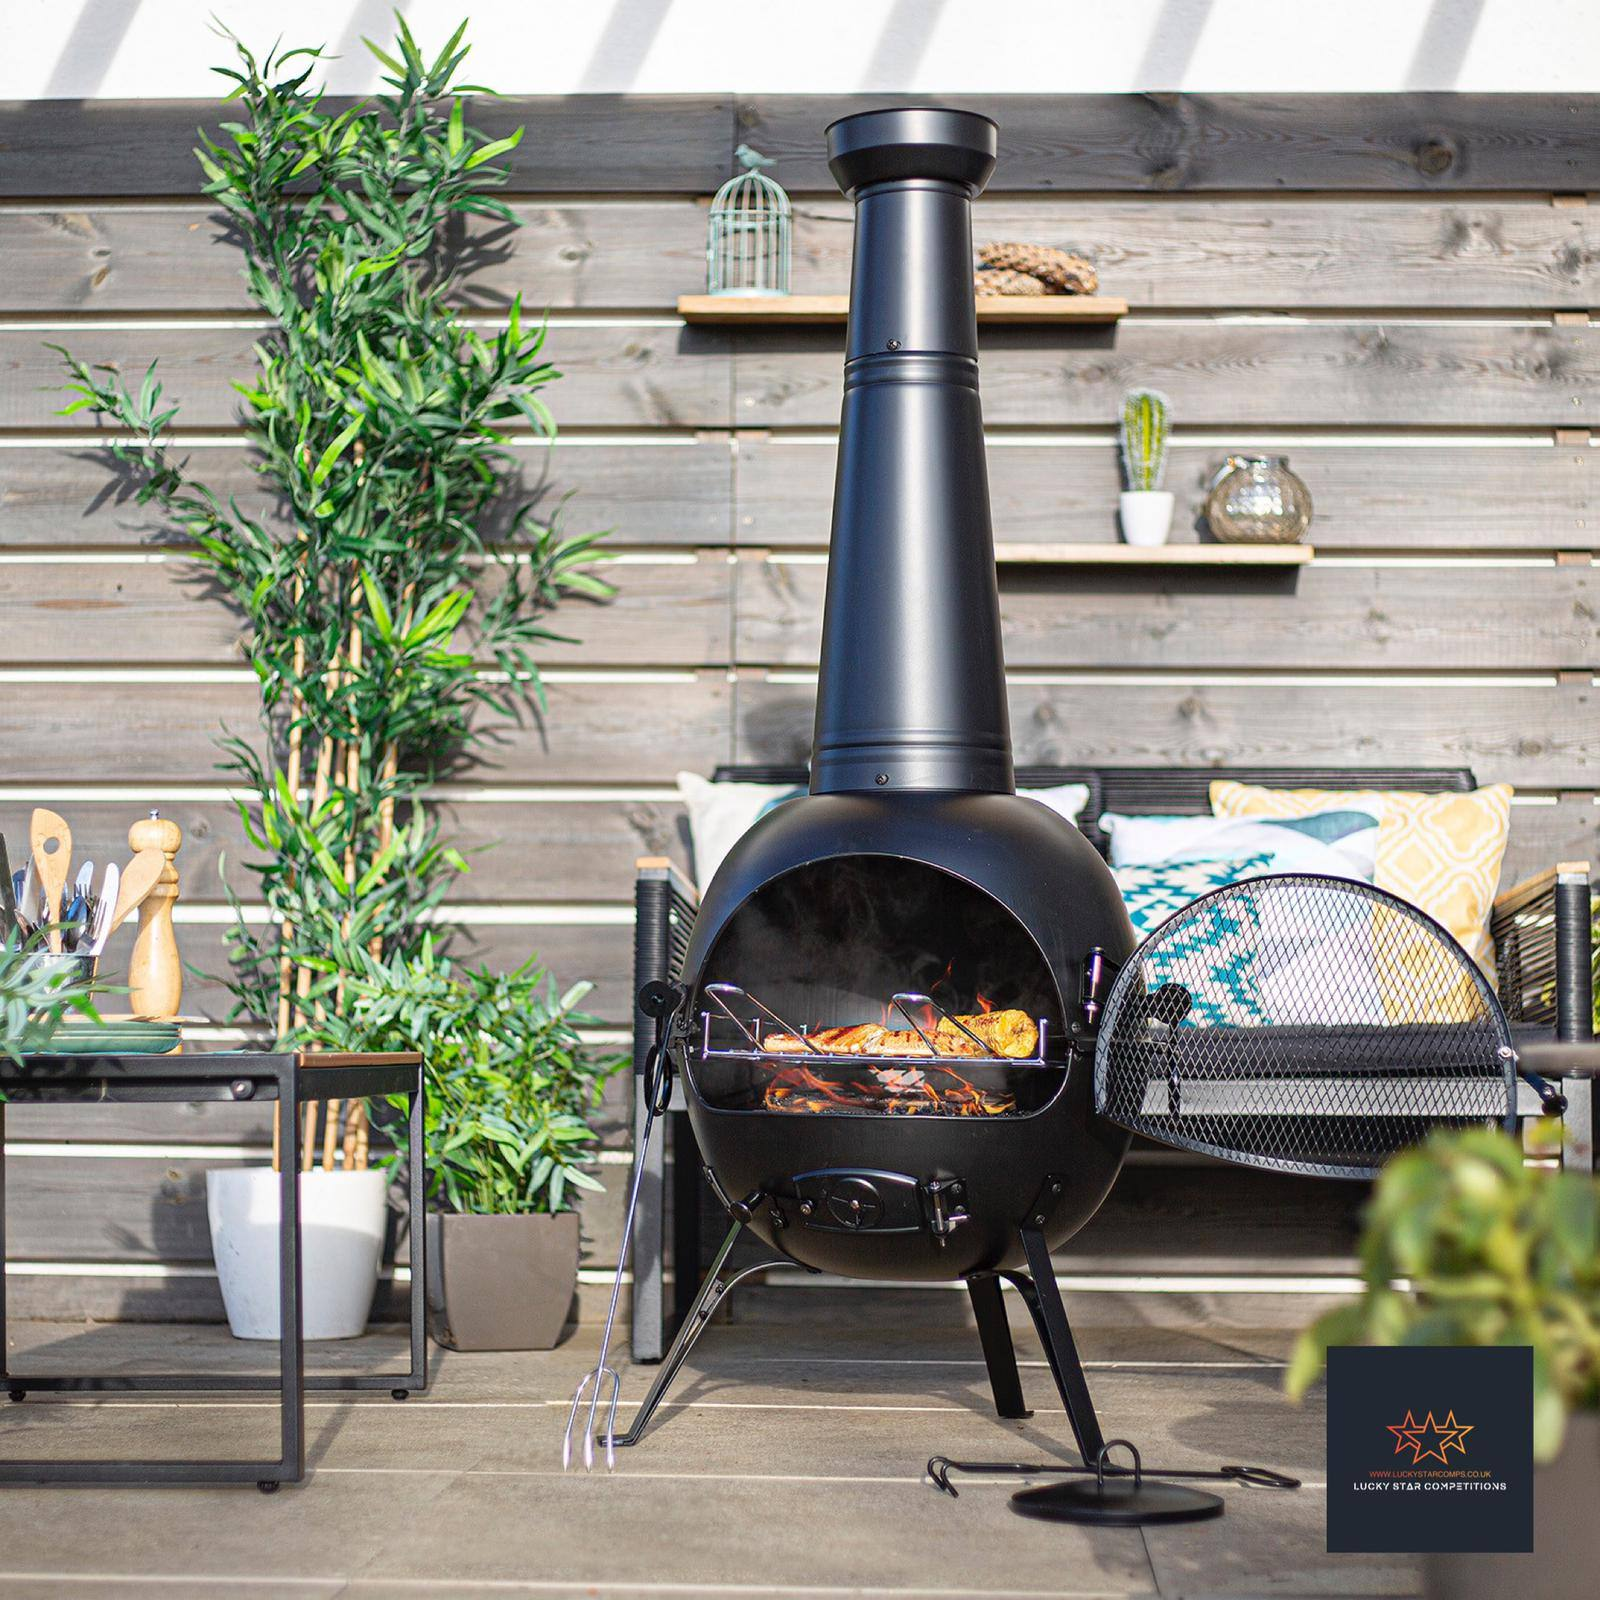 Entry List - Win This Amazing Chimenea BBQ Bundle with Accessories